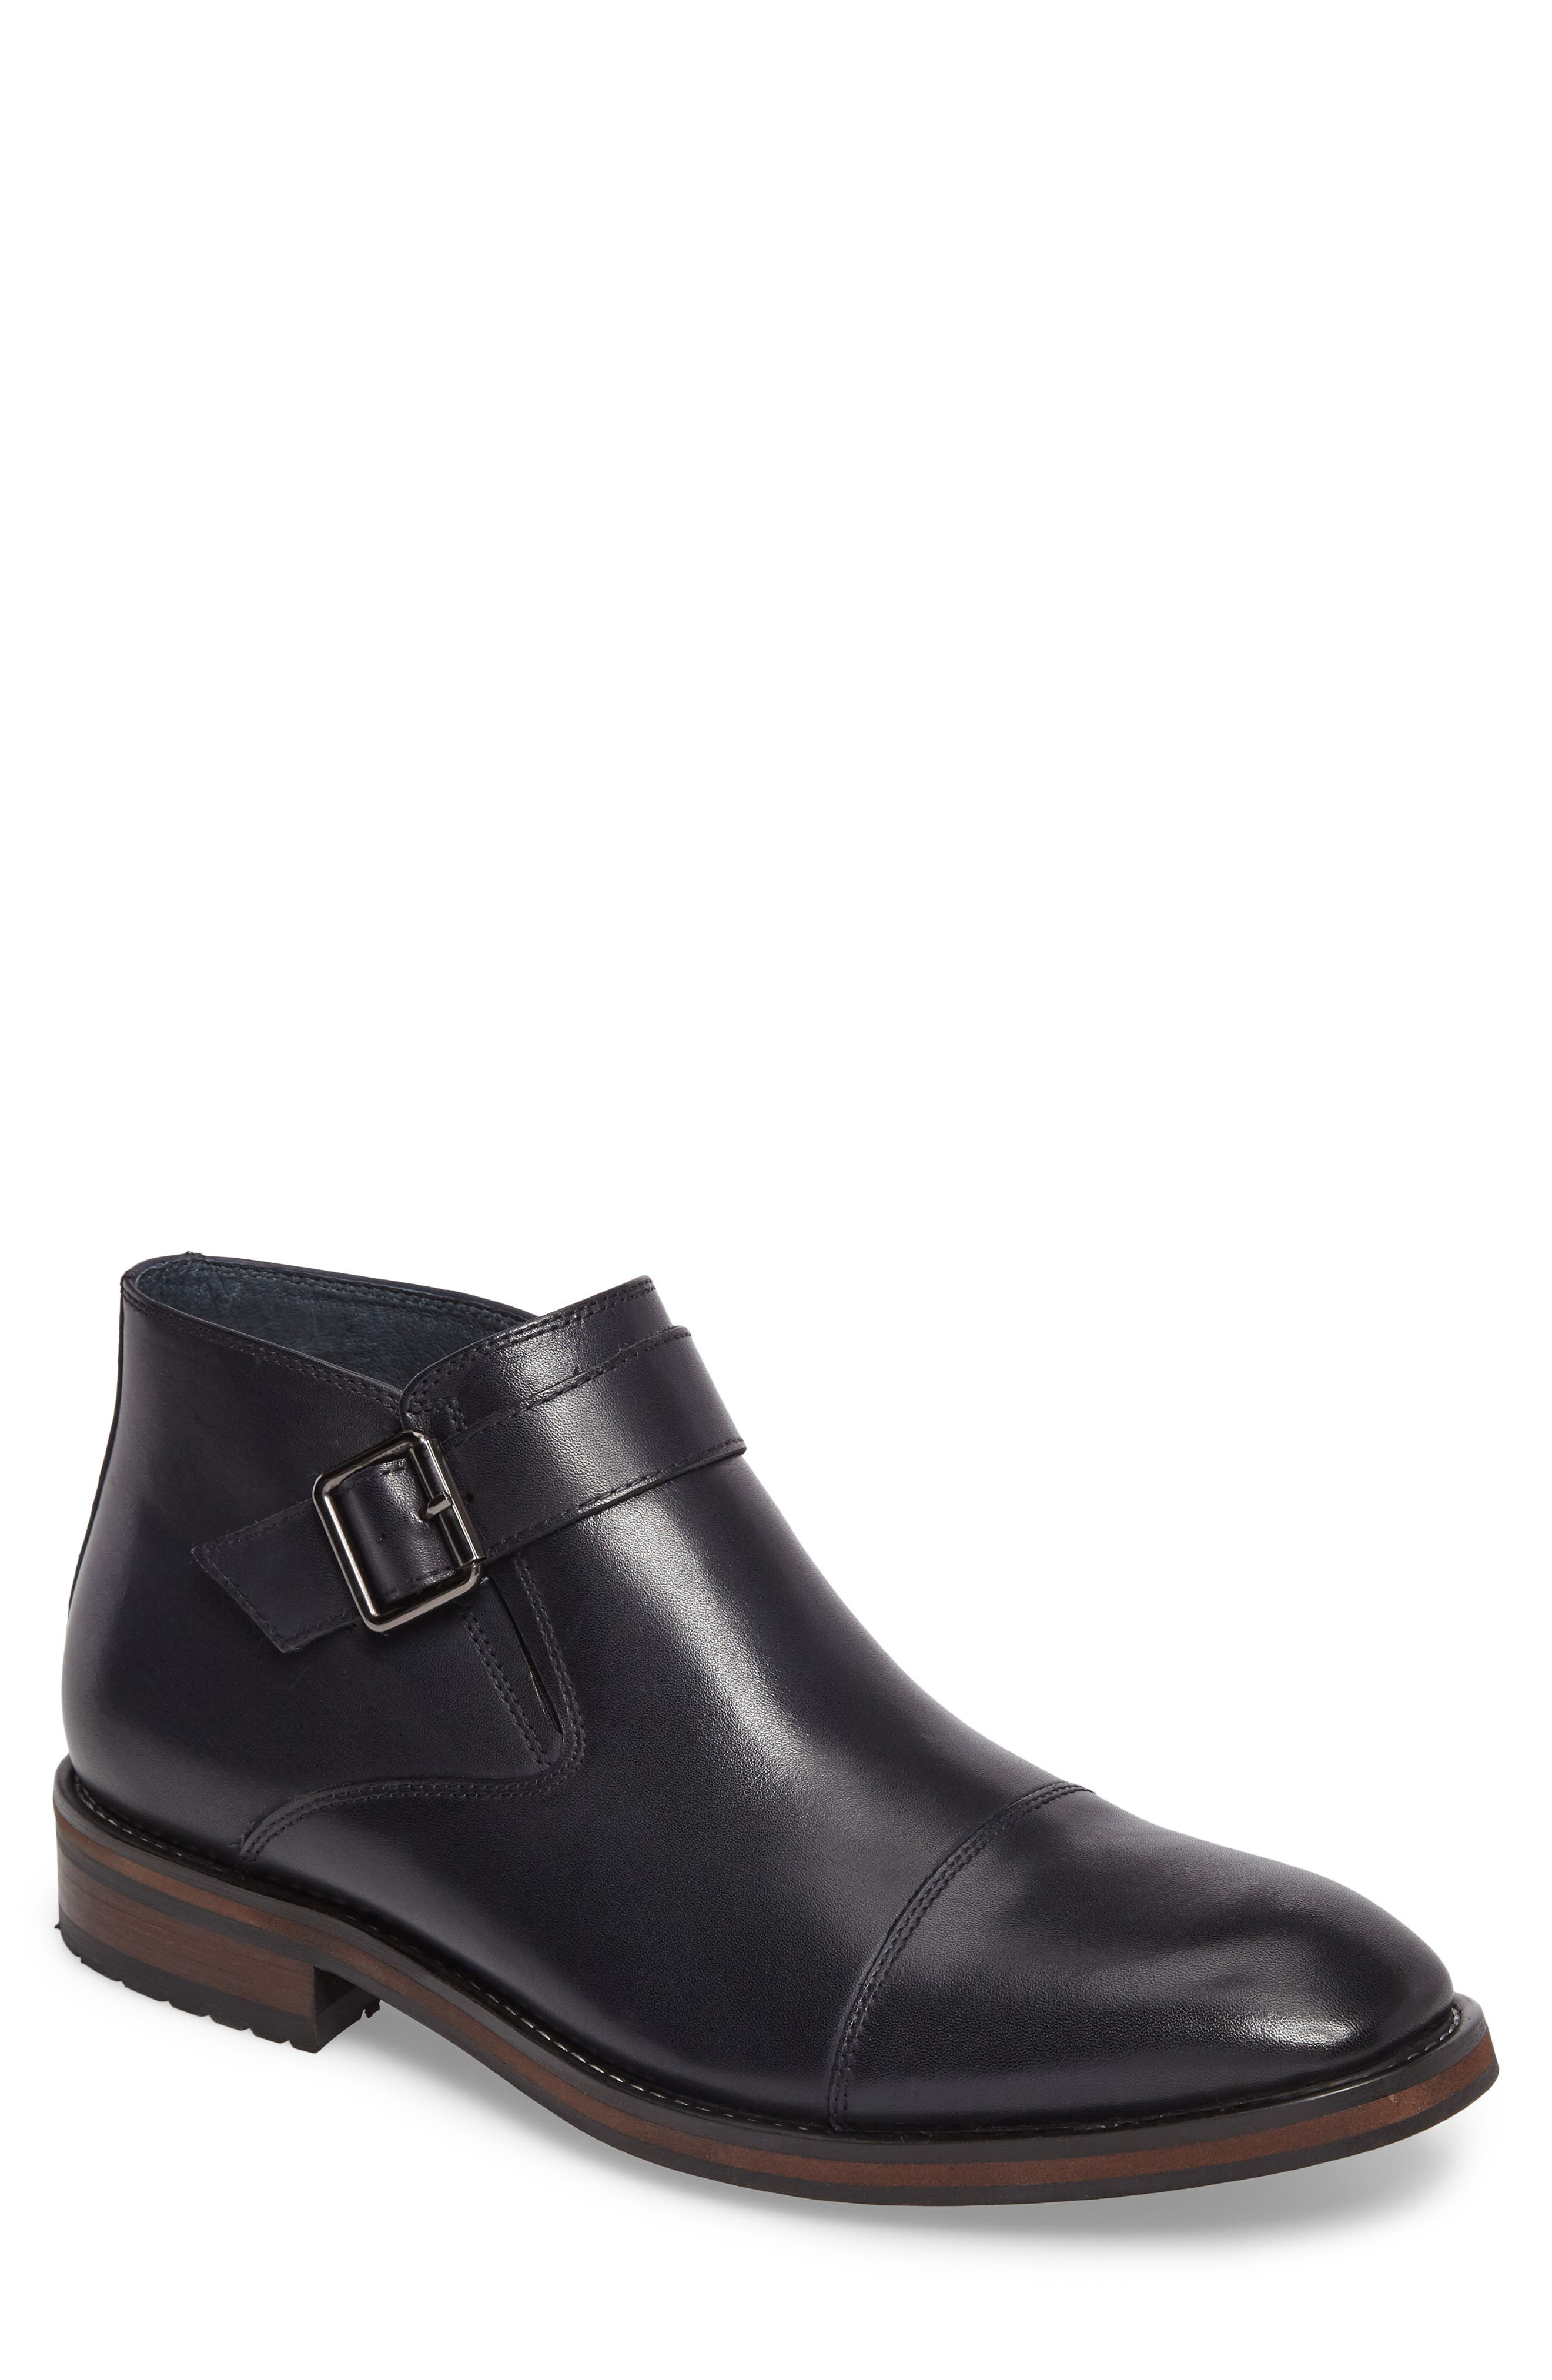 Main Image - Zanzara Lami Monk Strap Boot (Men)